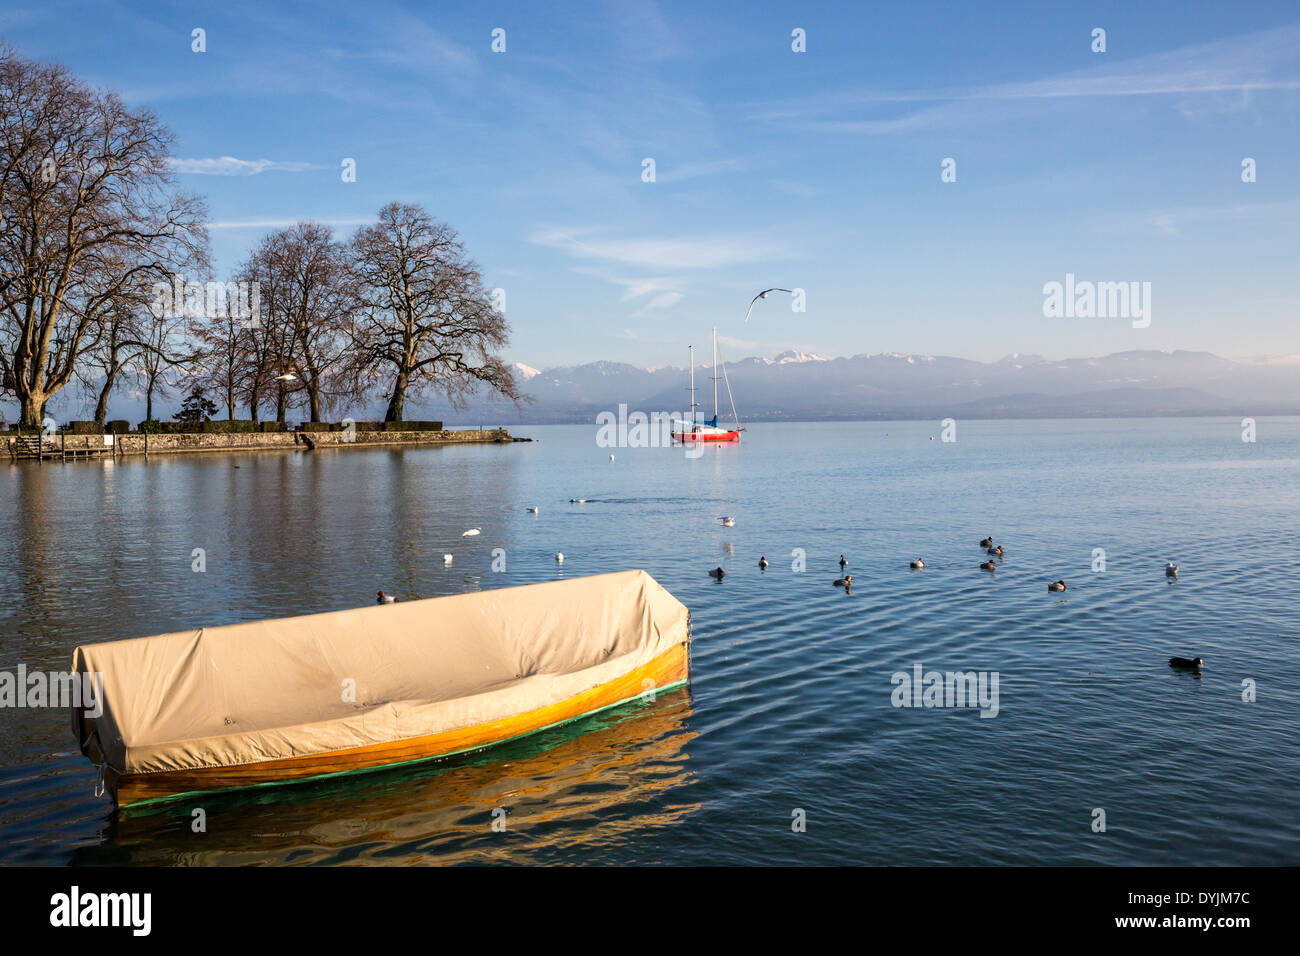 Two boats and ducks on Lake Geneva (Lac Léman) near Rolle Switzerland with a small island and the French Alps in the background. - Stock Image